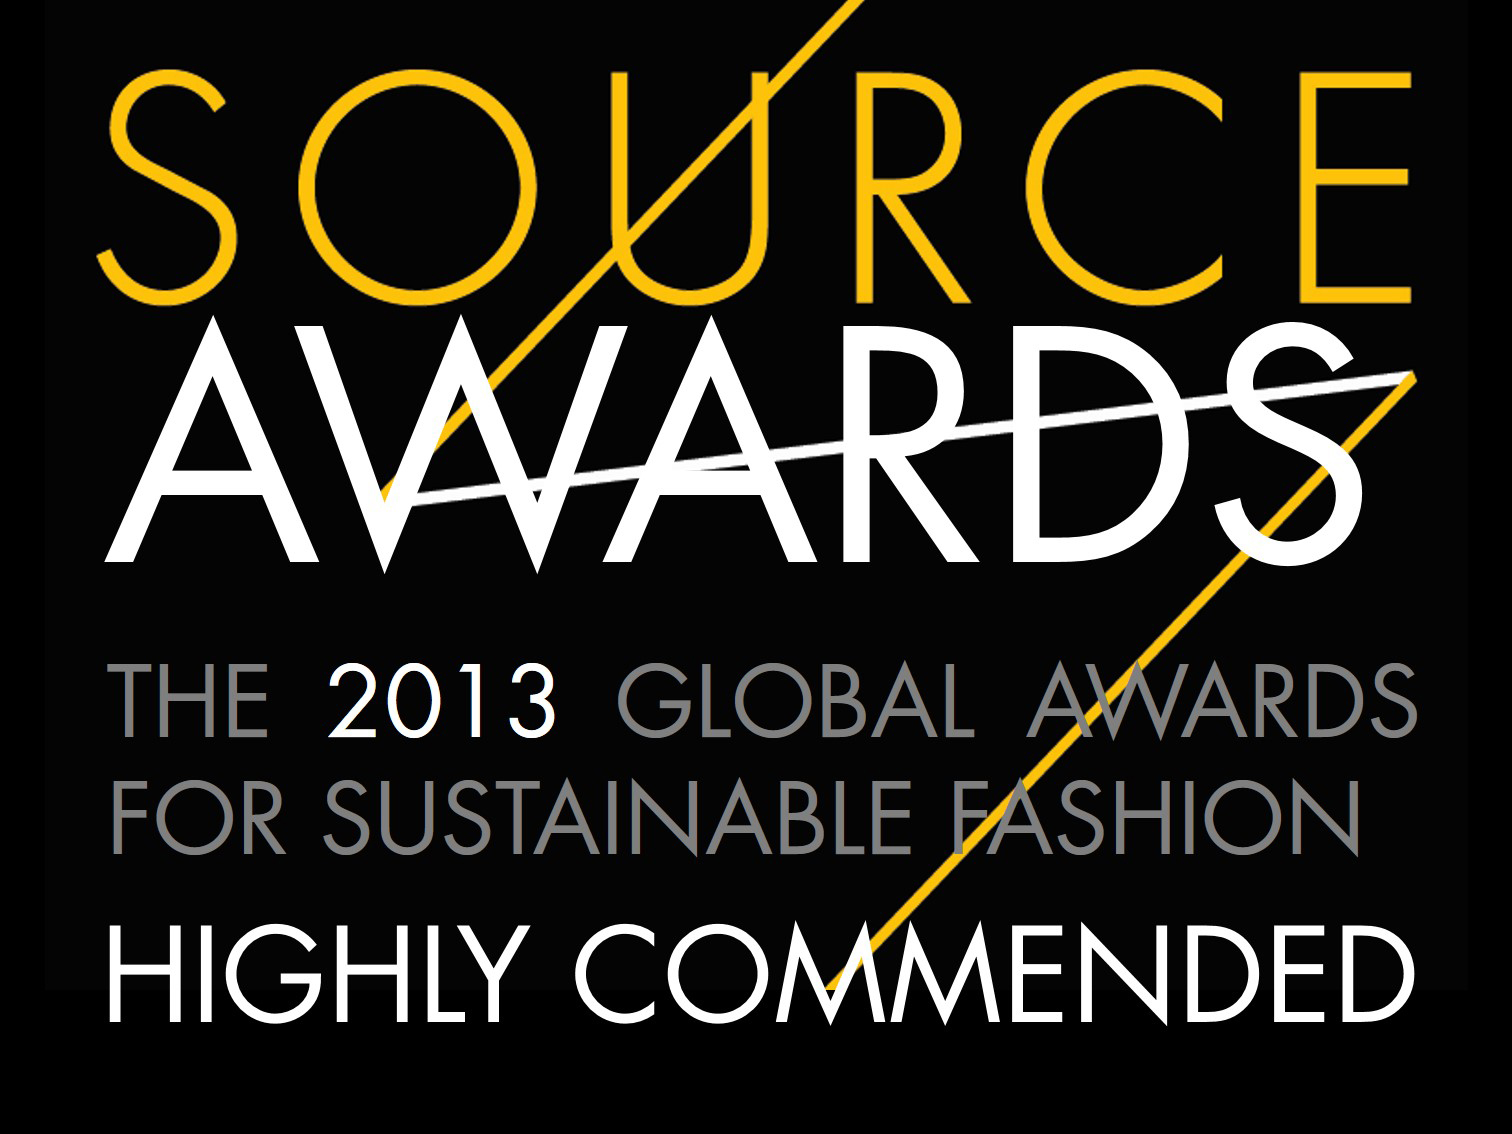 SOURCE-Awards-Highly-Commended-Logo.jpg